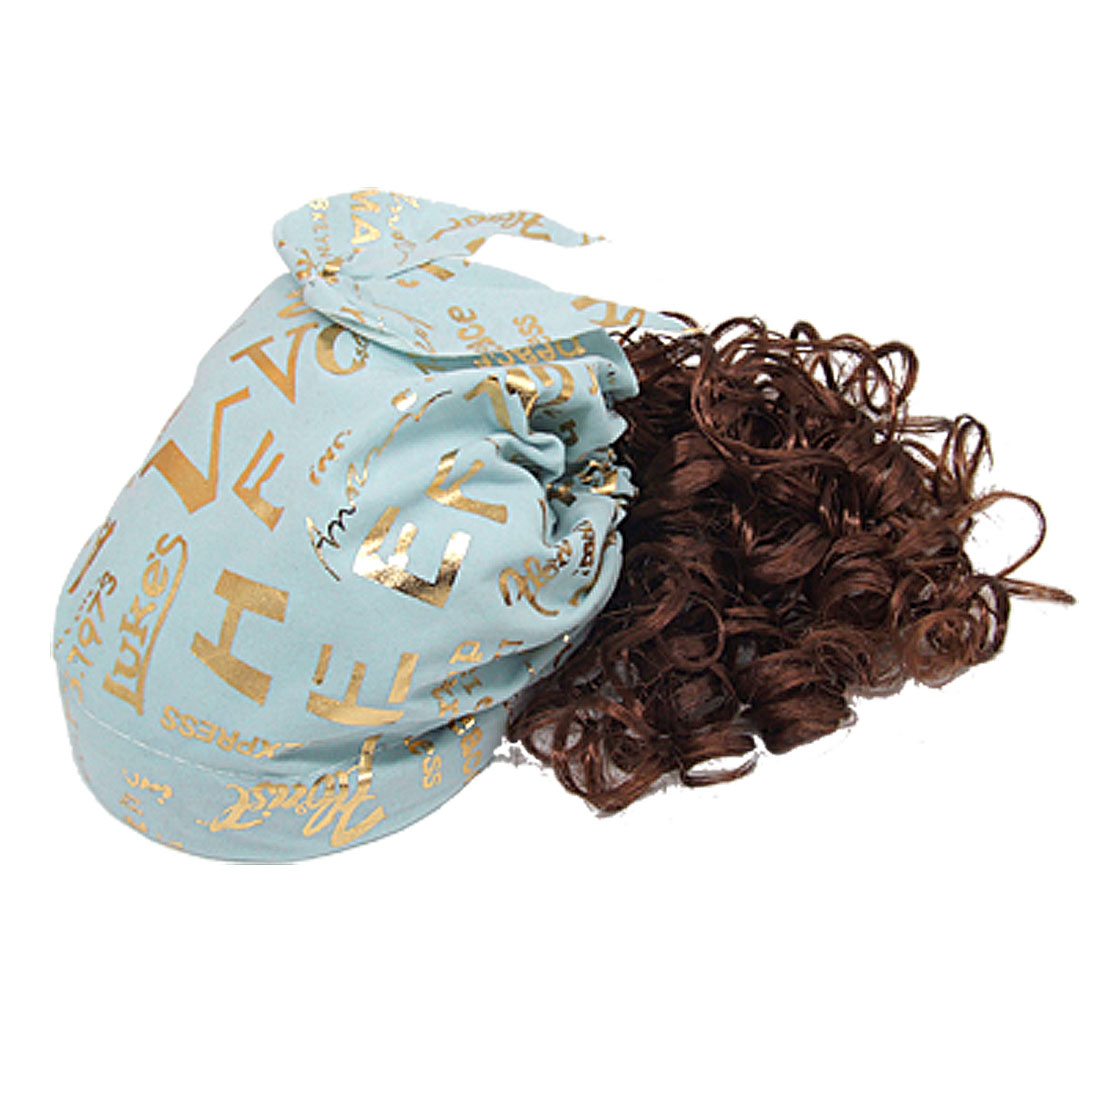 Girl Brown Curly Wig w Letters Print Bandana Cap Blue